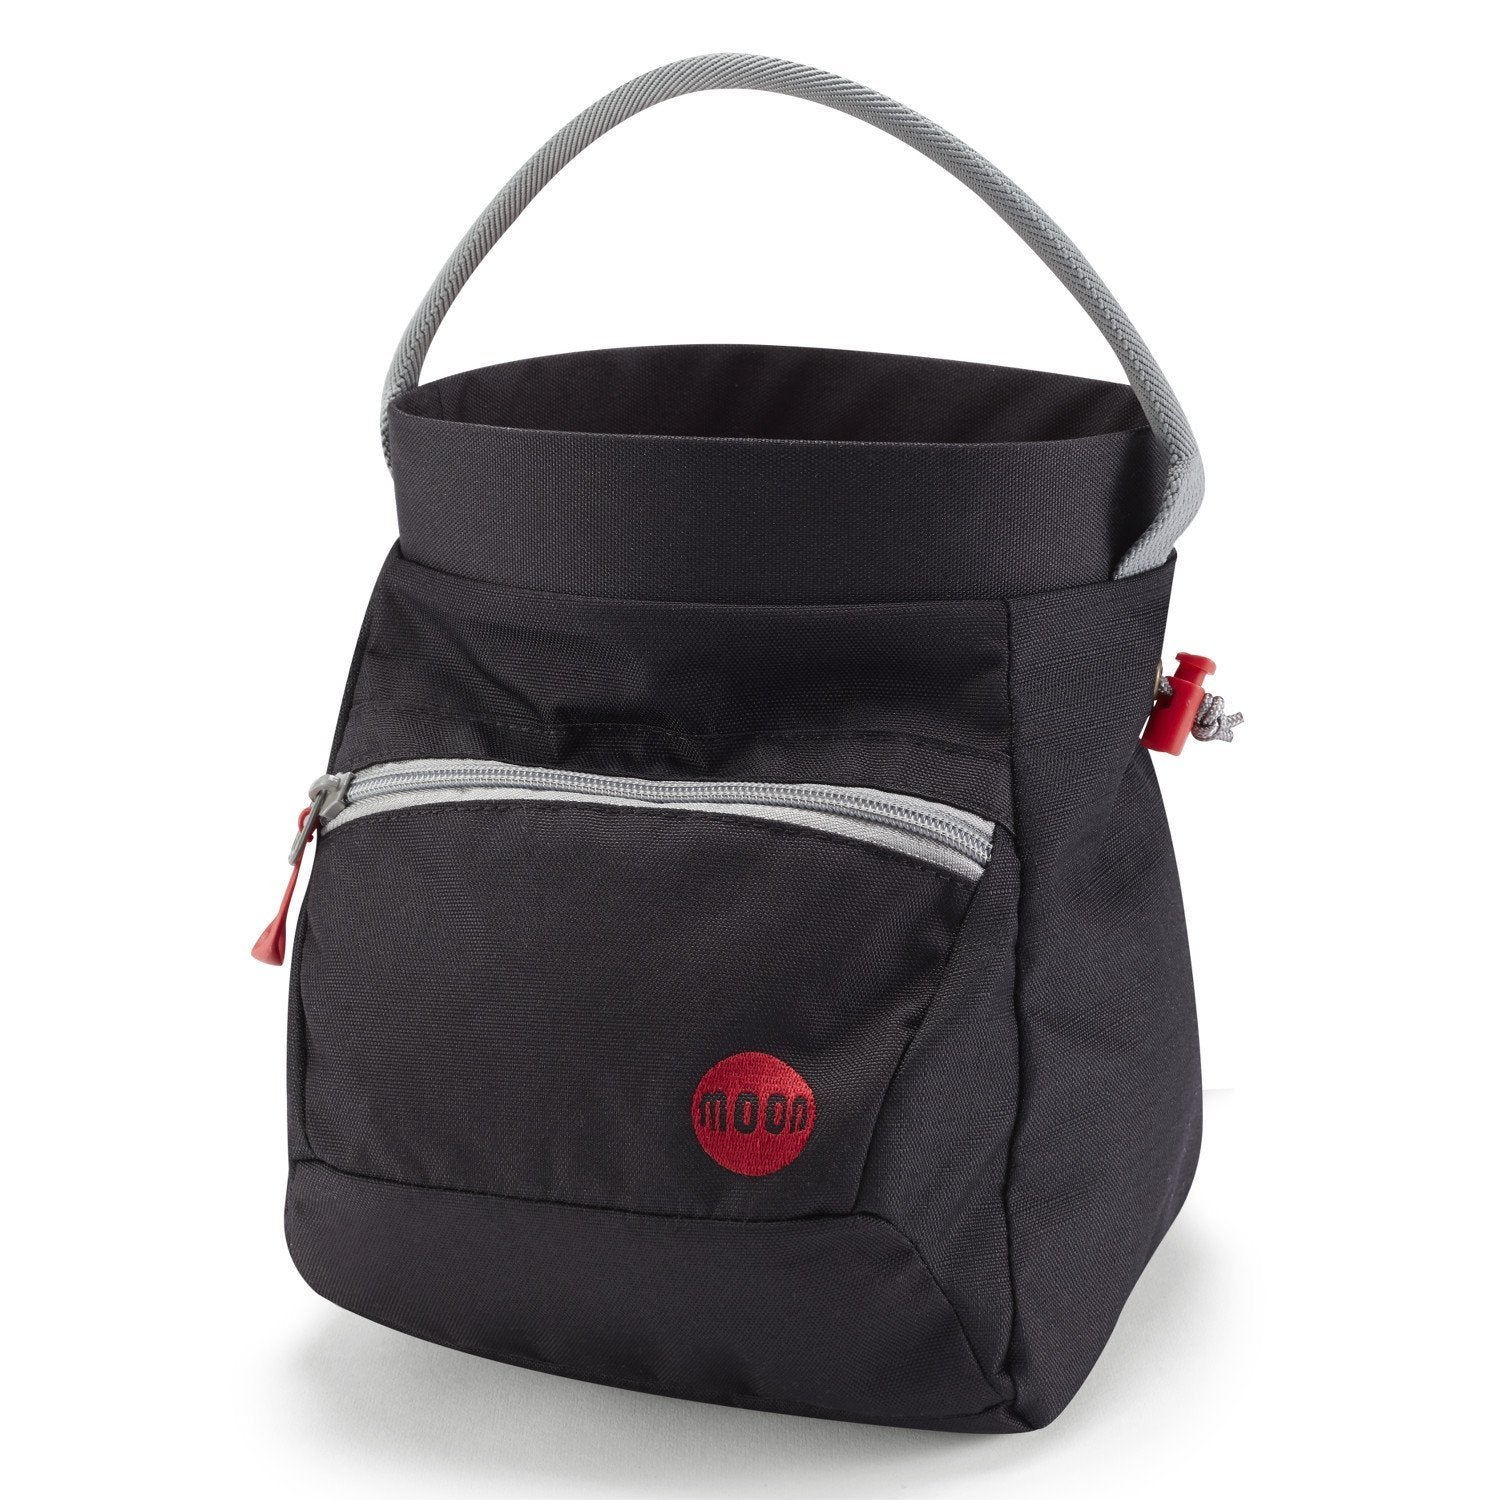 Moon Deluxe Bouldering Chalk Bag, in Black